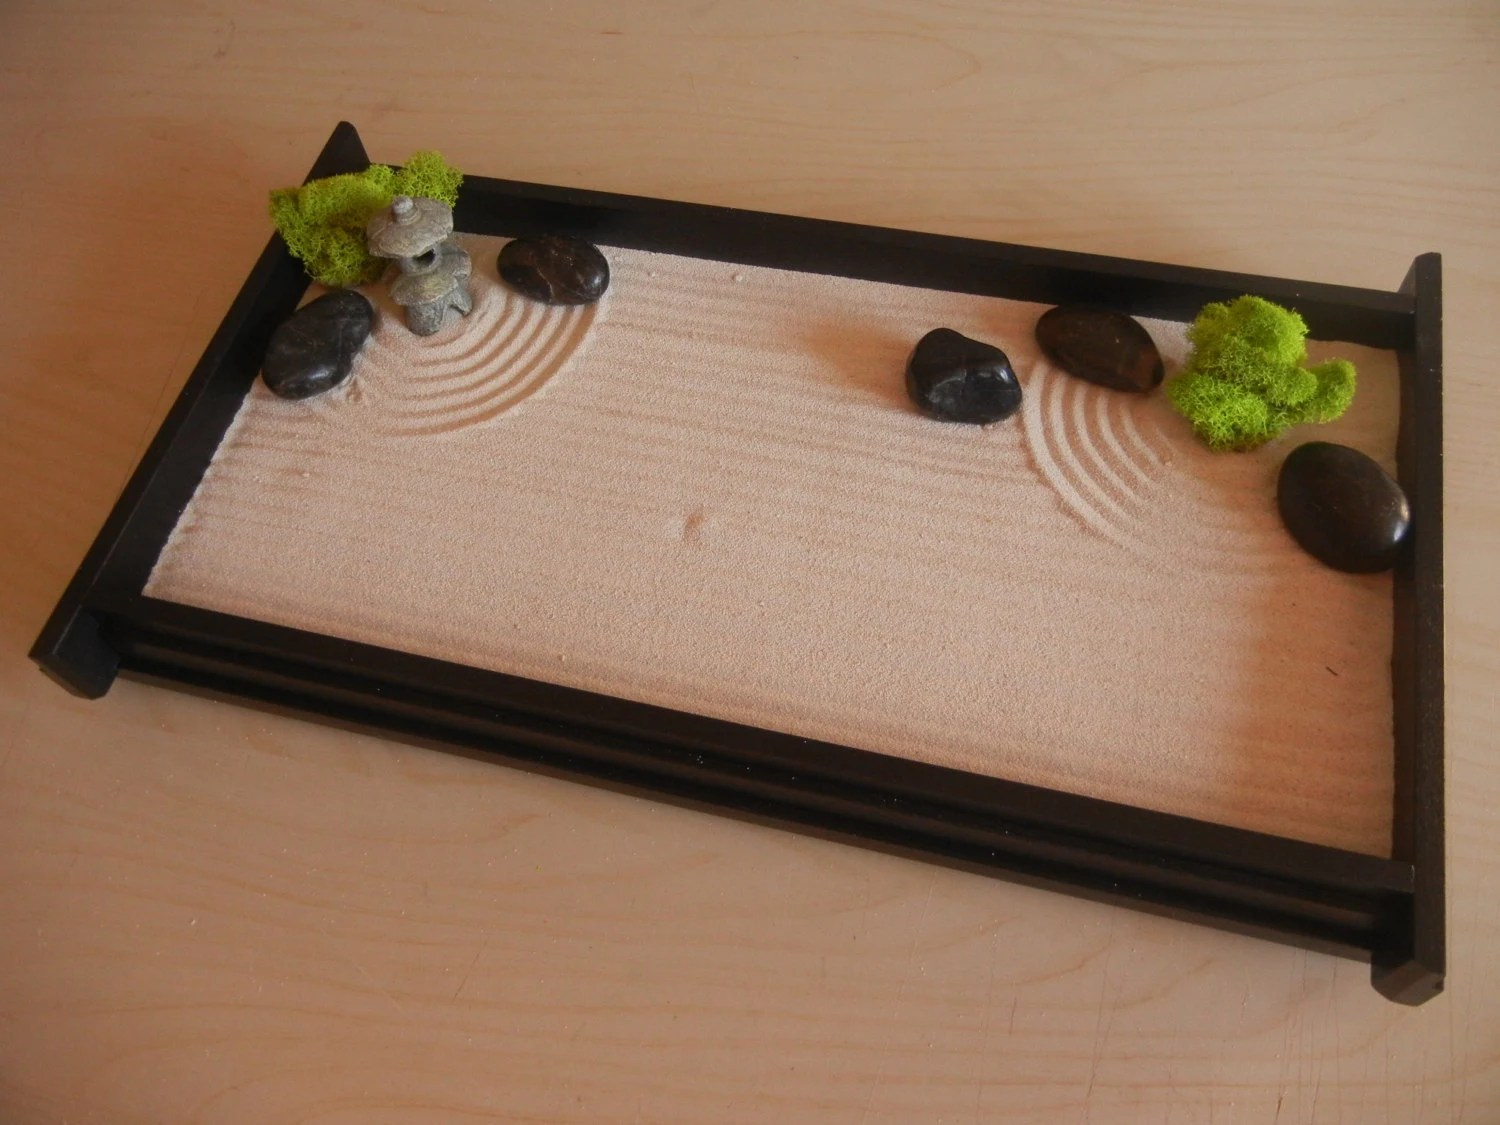 Table Top Zen Garden L03p Large Desk Or Table Top Zen Garden With Mini Pagoda Diy Kit